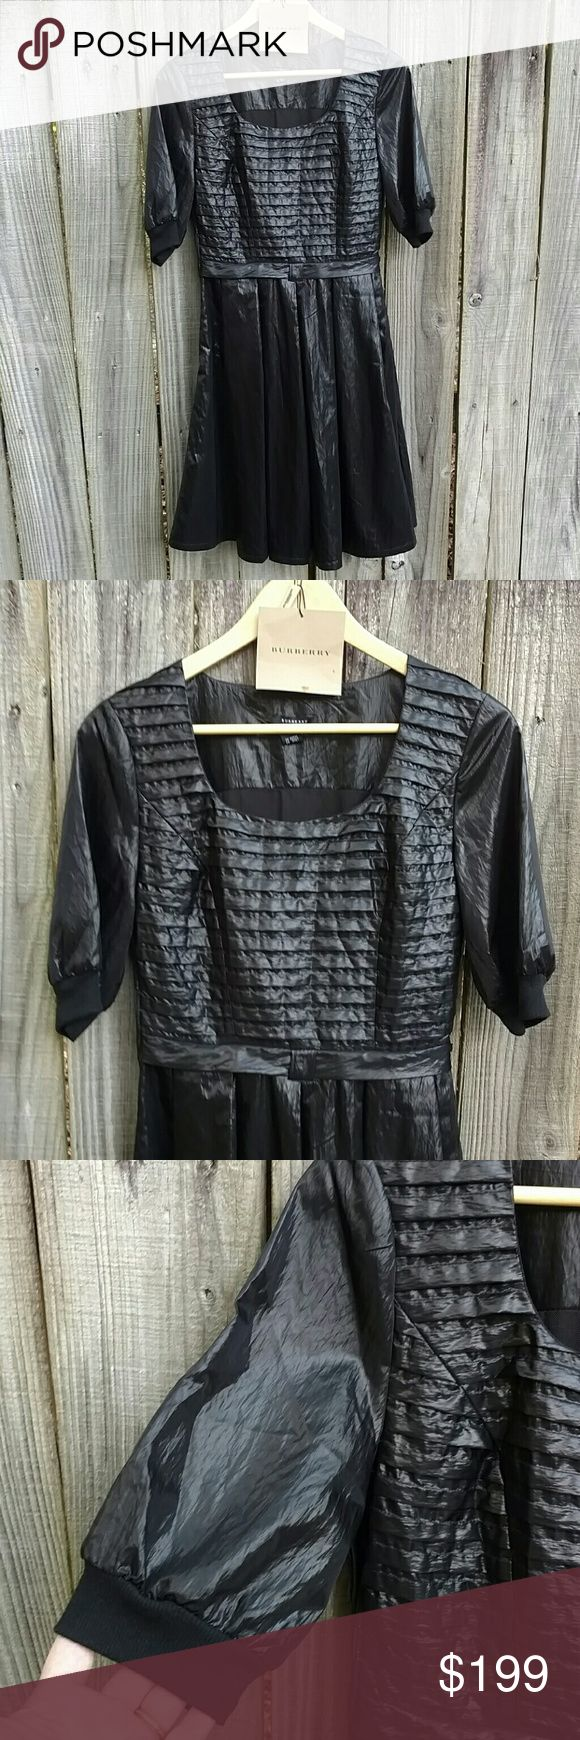 Burberry Black Label Dress Scoop neck dress. Short sleeves with knit cuff. Pleated fitted bodice and full skirt. Side zipper. 100% cotton, size L. Tags included. Burberry Dresses